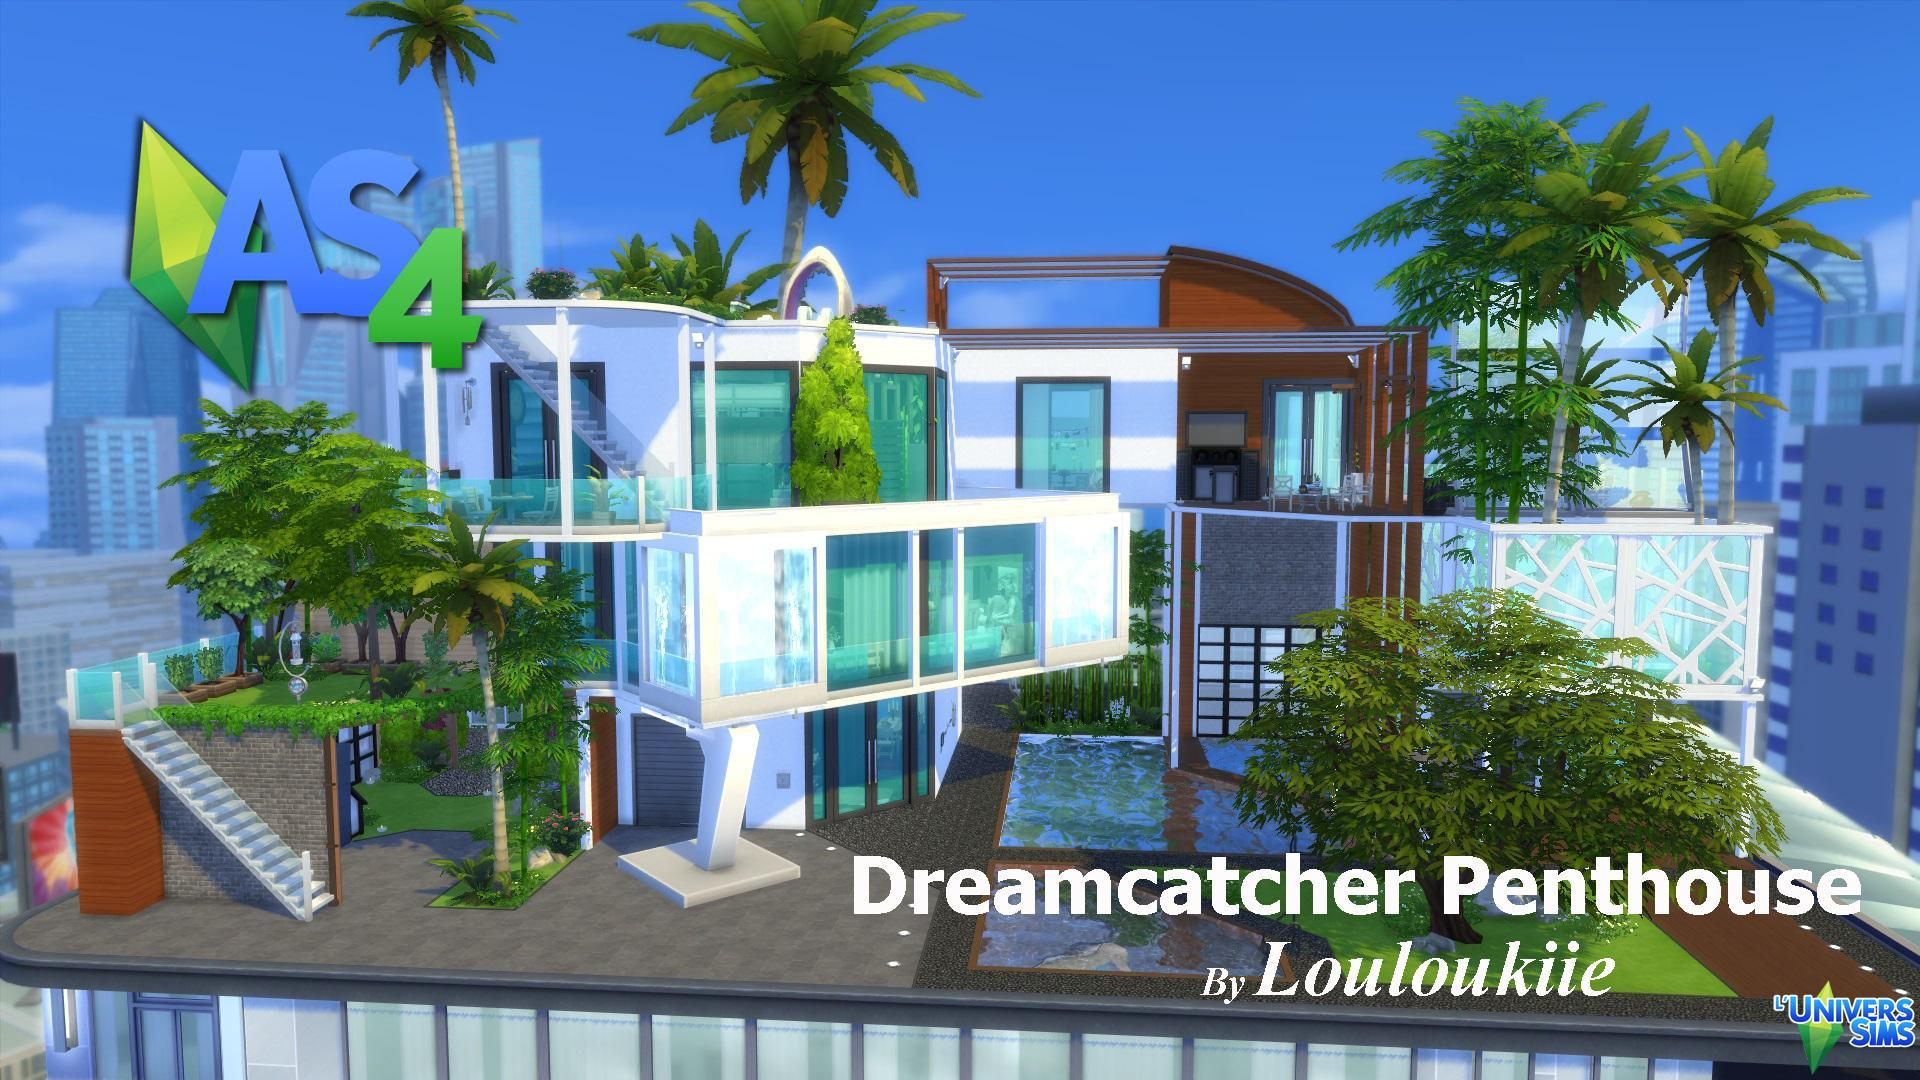 Dreamcatcher Penthouse